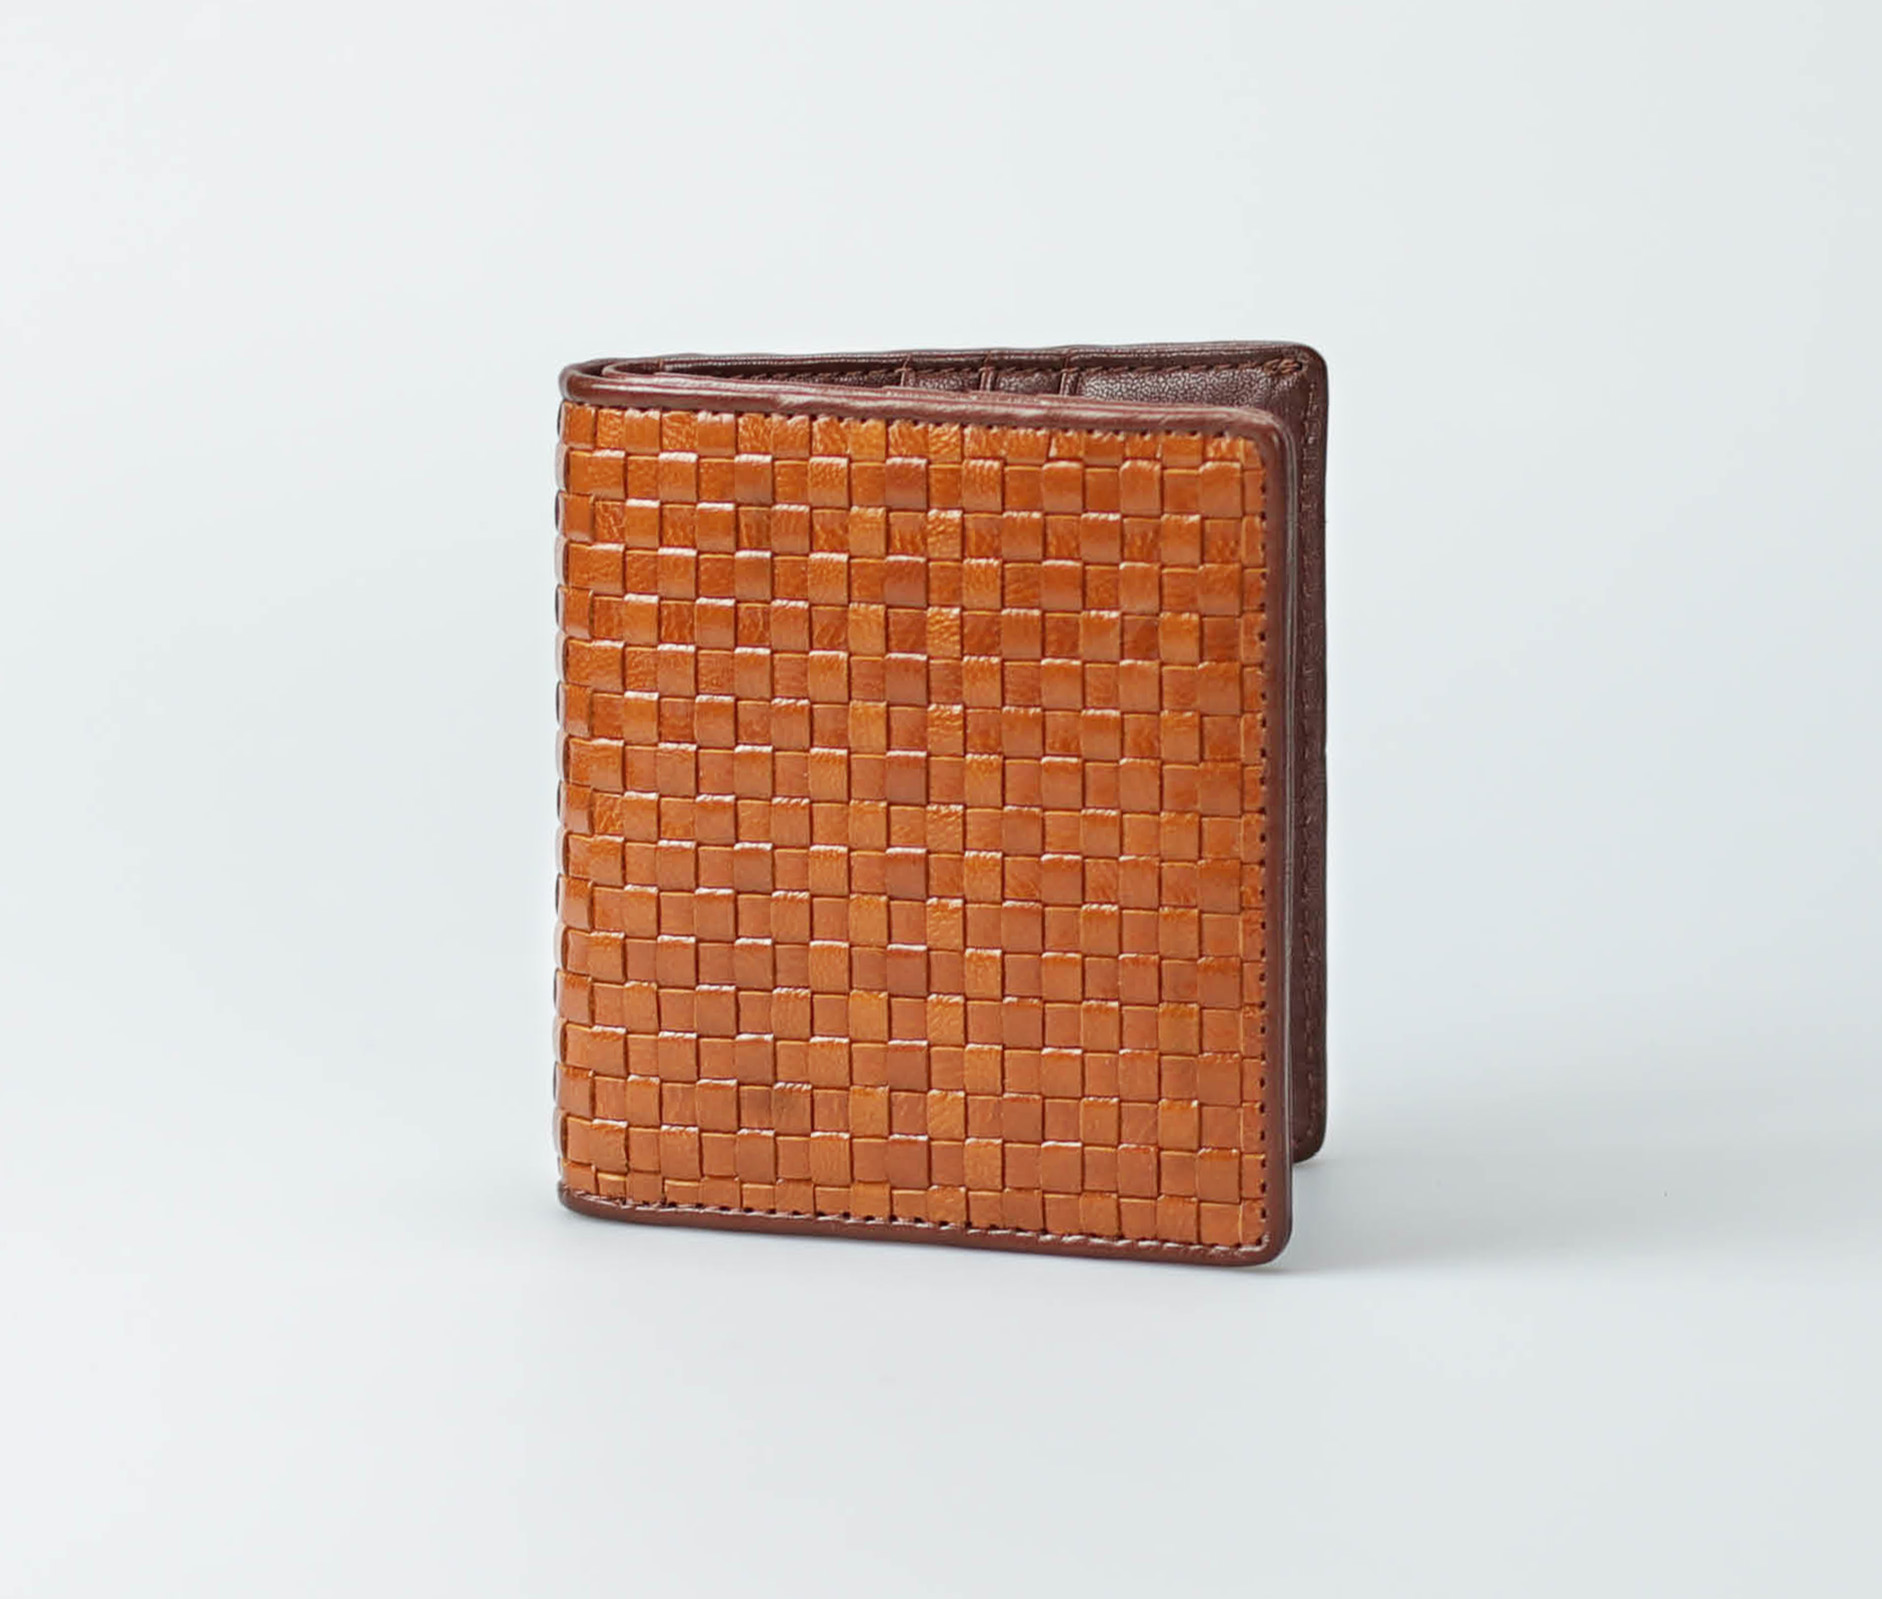 Verical Woven Leather Wallet